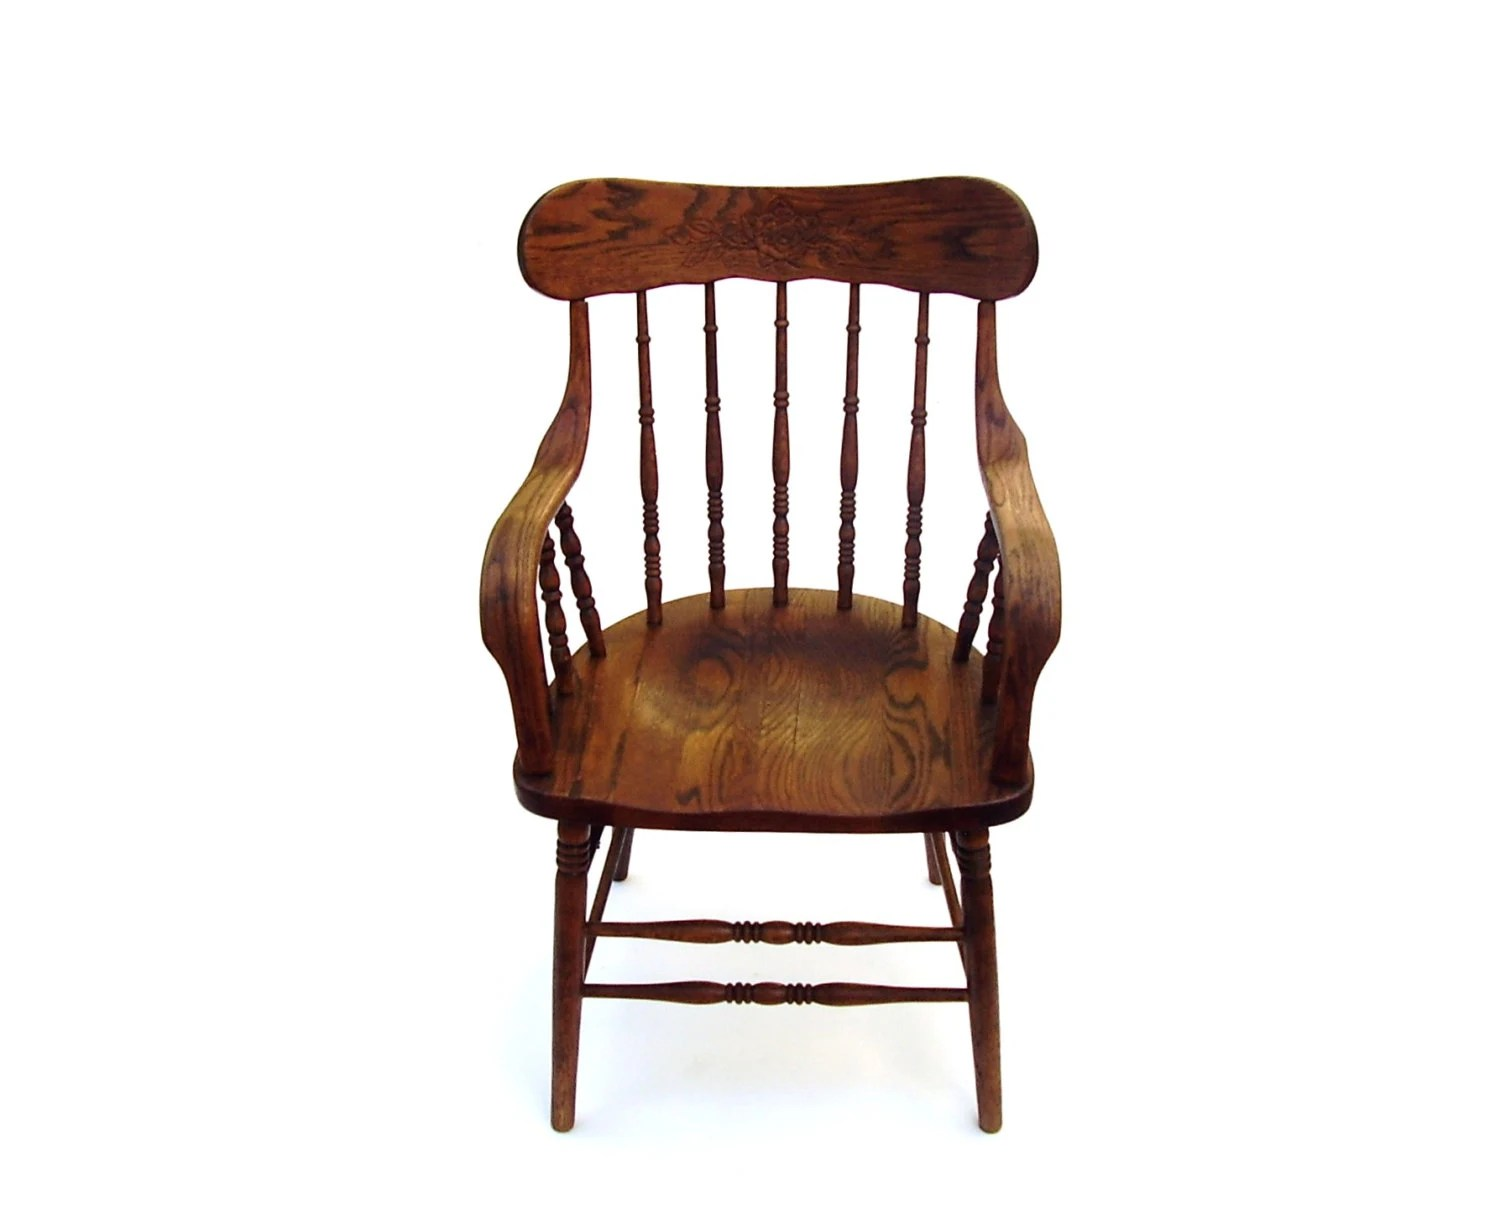 Antique Wooden Chair Antique Oak Chair Vintage Wood Captain Chair Spindle Back